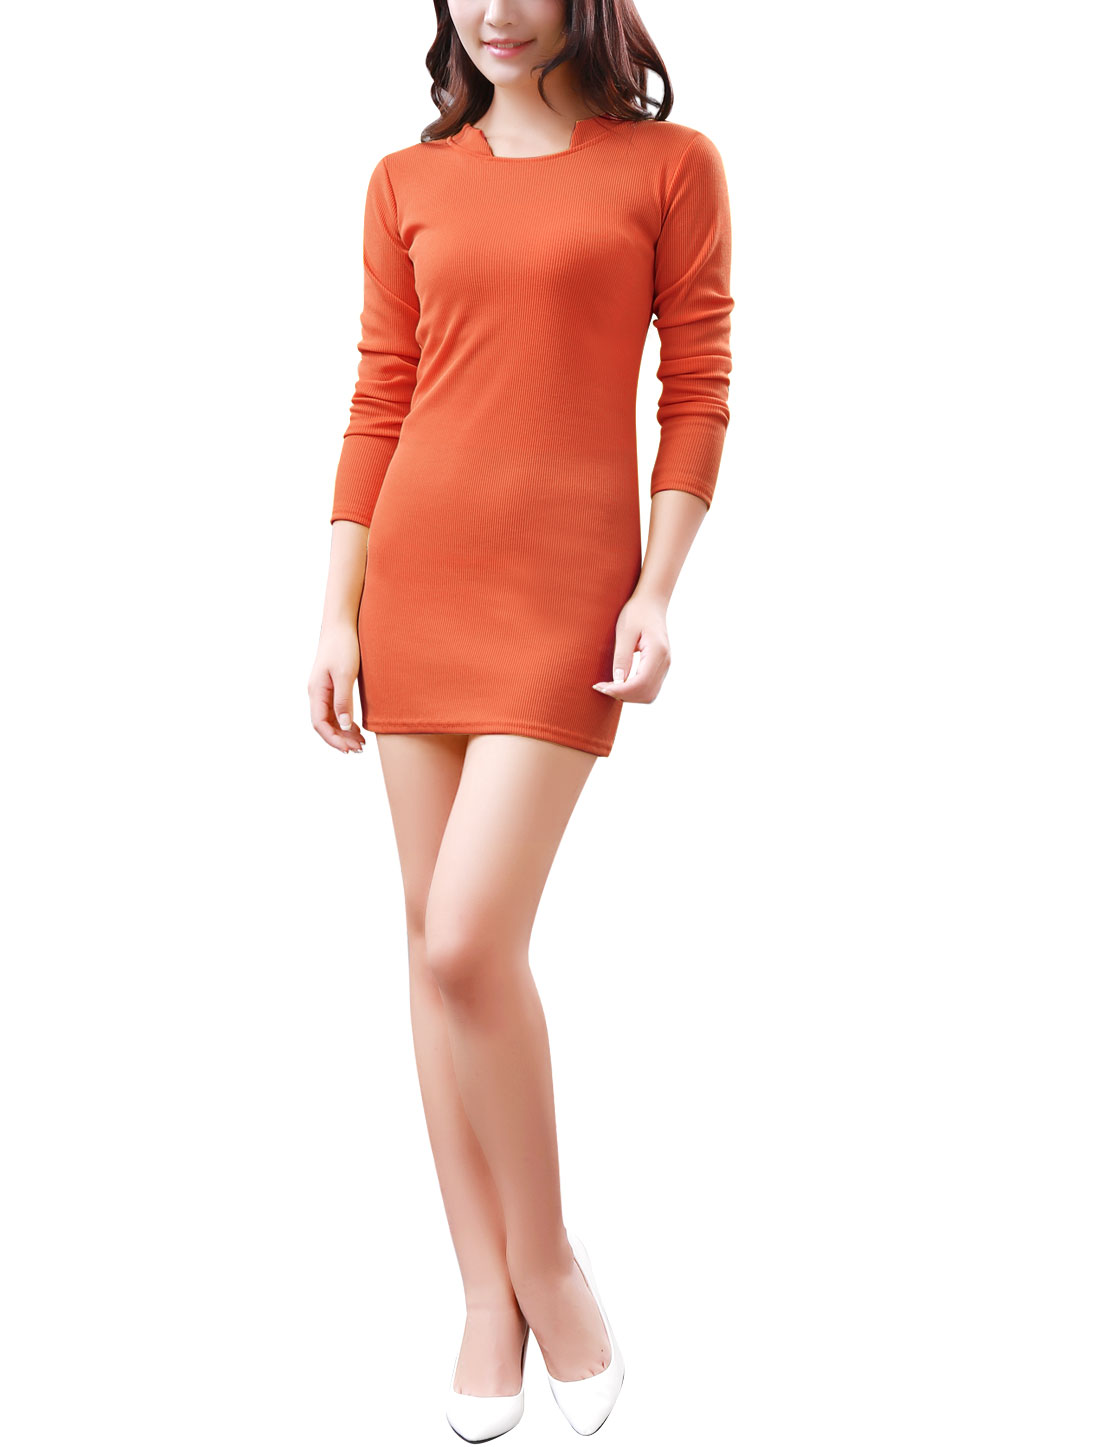 Women Stand Collar Pure Design Ribbed Cuffs Stretchy Knit Dress Orange S